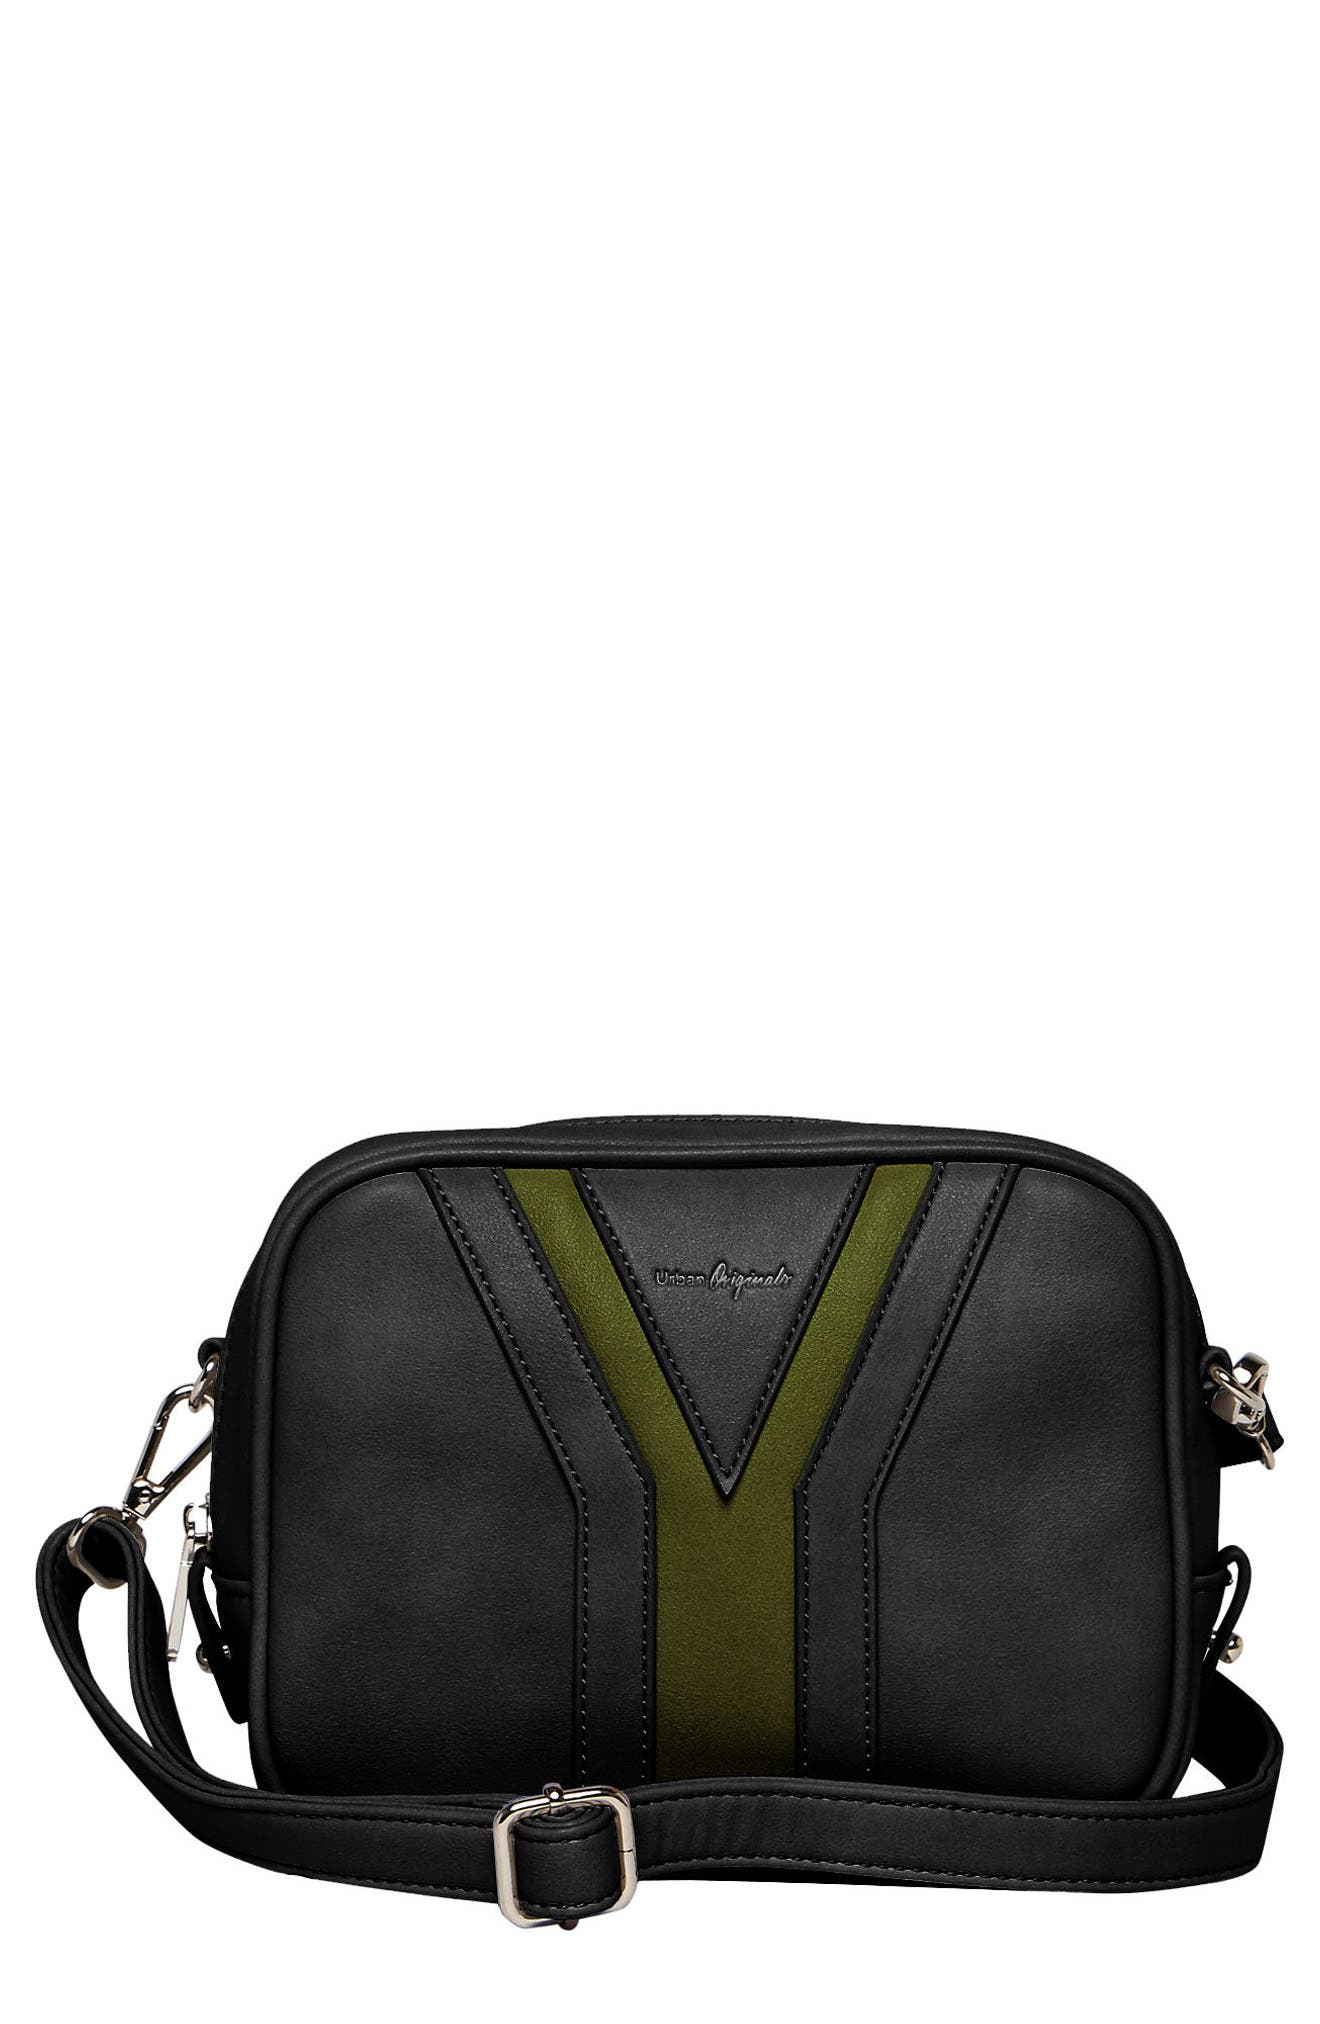 Late Night Vegan Leather Crossbody Bag,                         Main,                         color, Black/ Green